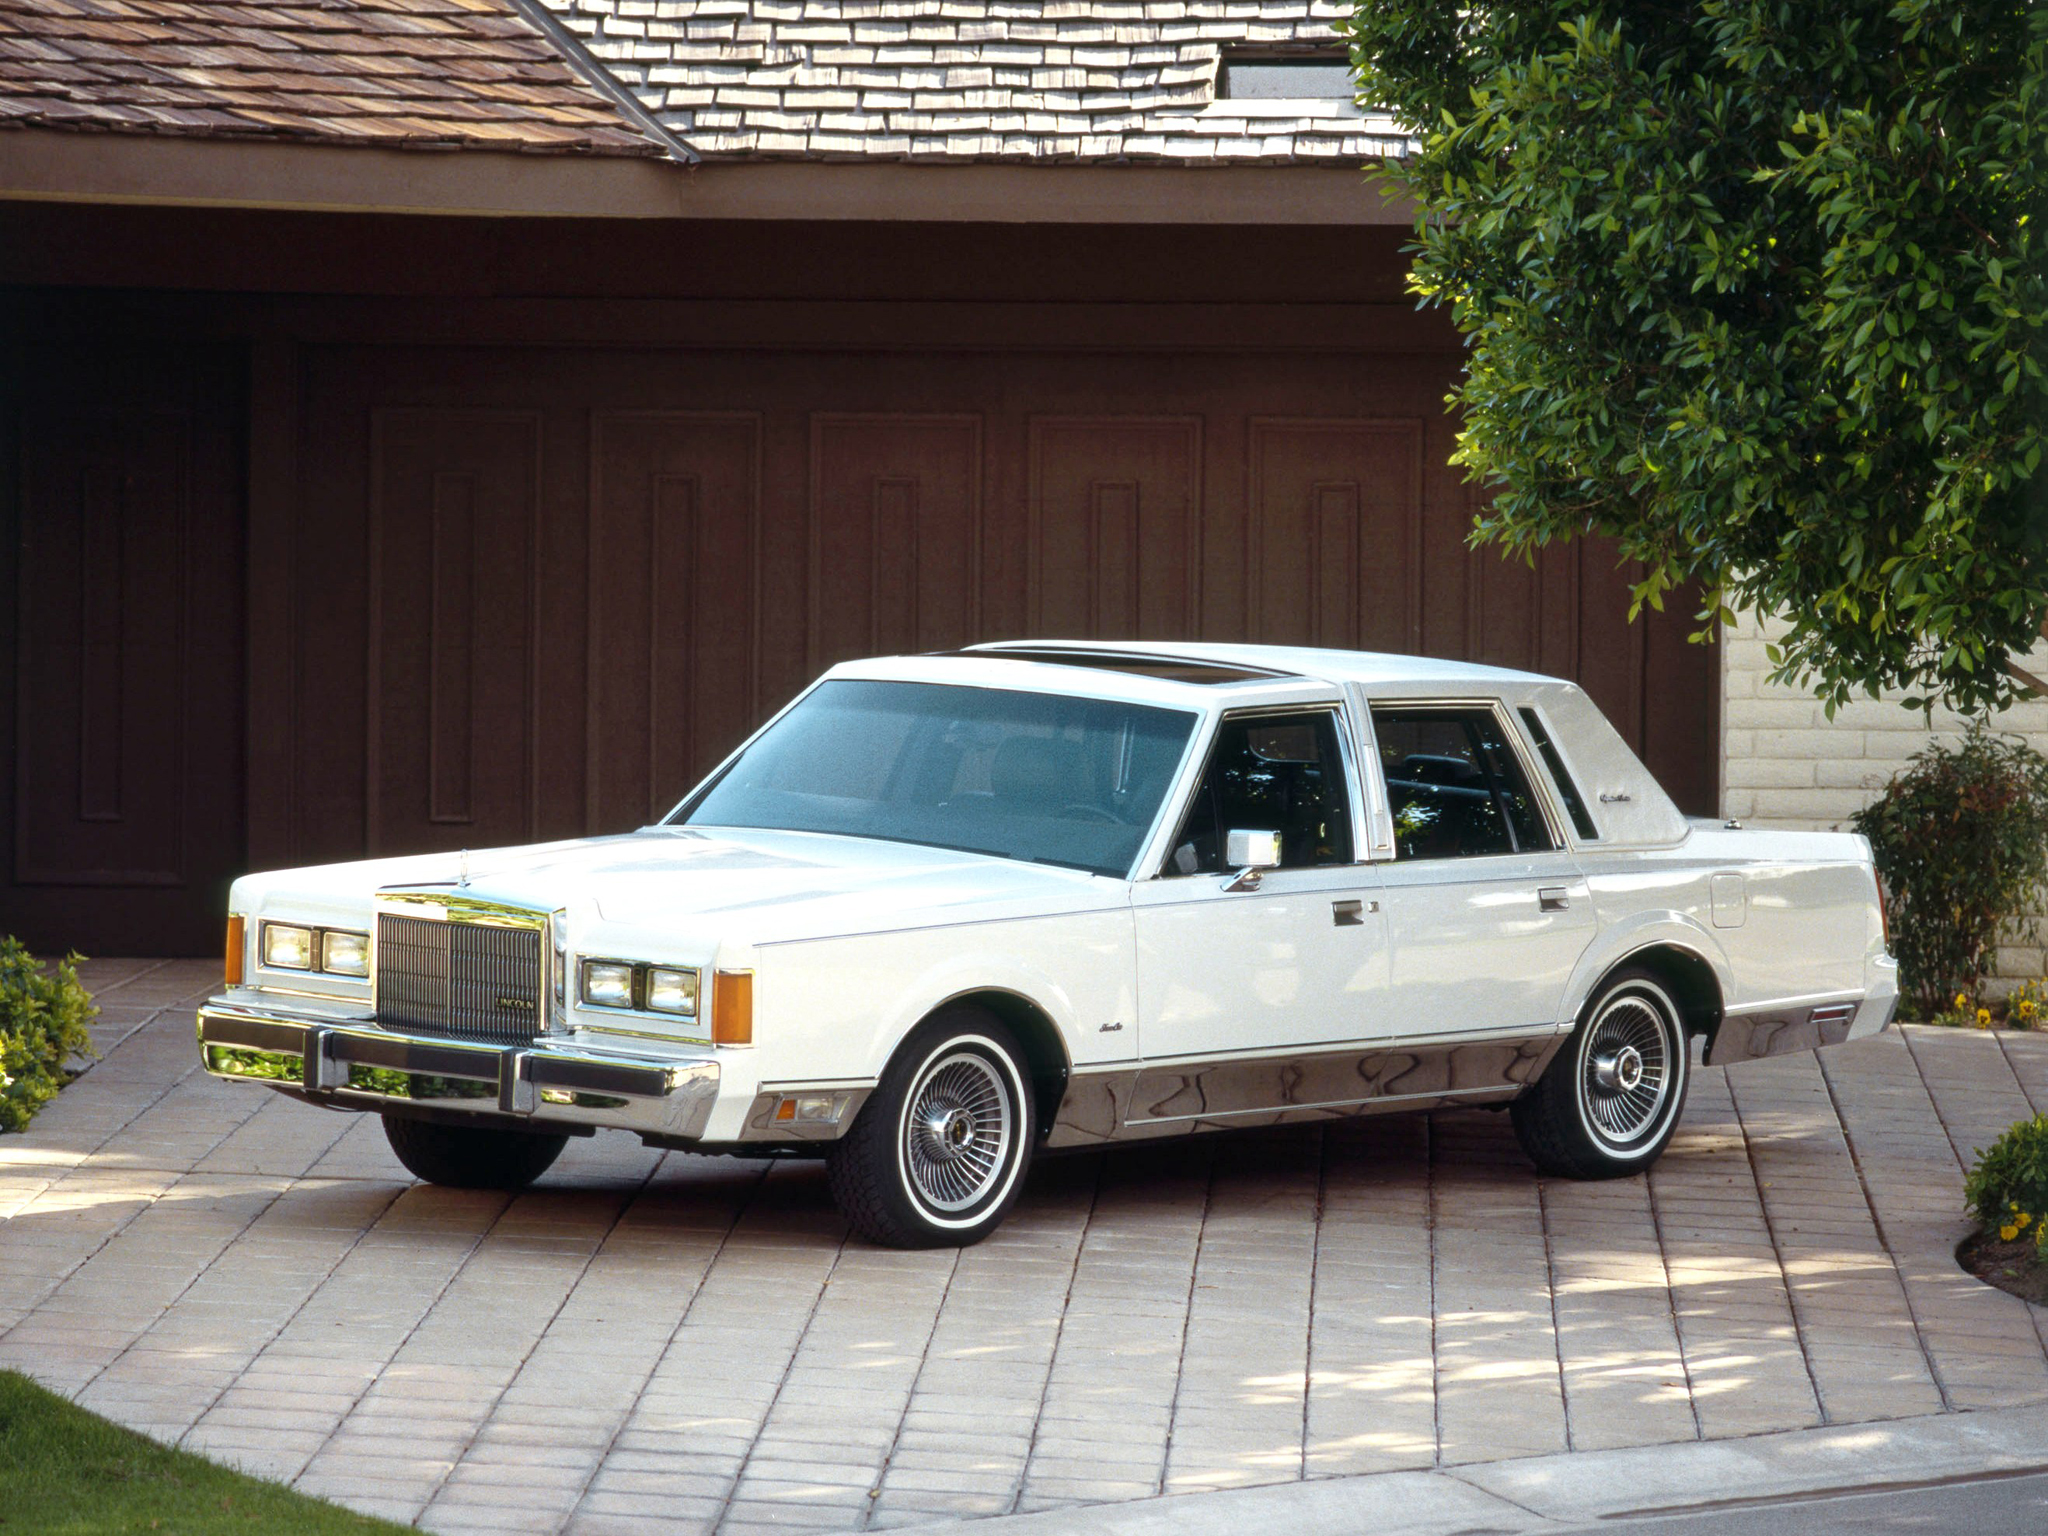 1985 lincoln town car luxury classic wallpaper 2048x1536 116111 wallpaperup. Black Bedroom Furniture Sets. Home Design Ideas